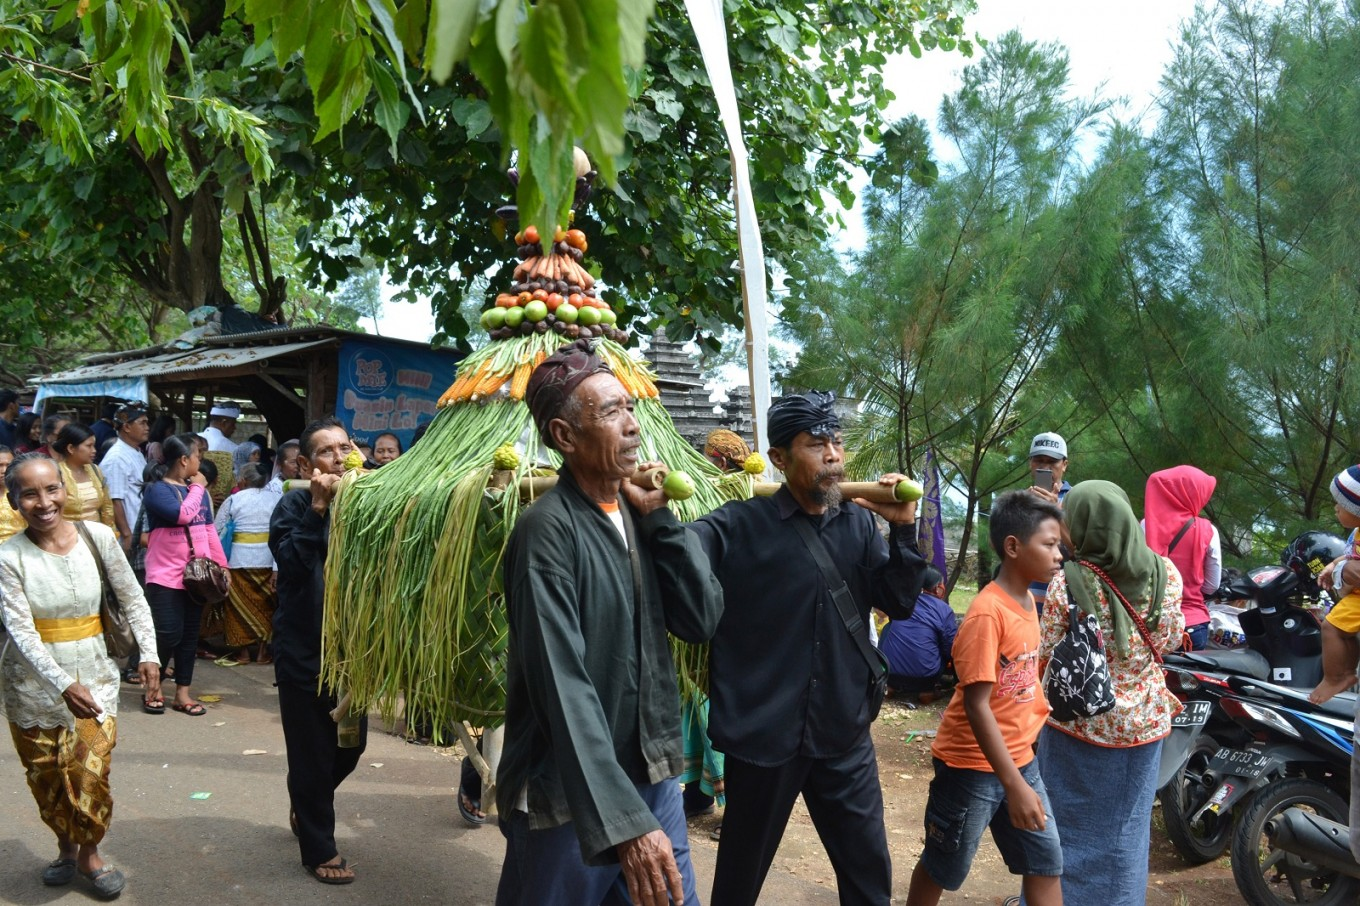 Gunungan (cone-shaped floats) are distributed to participants following the ceremony.